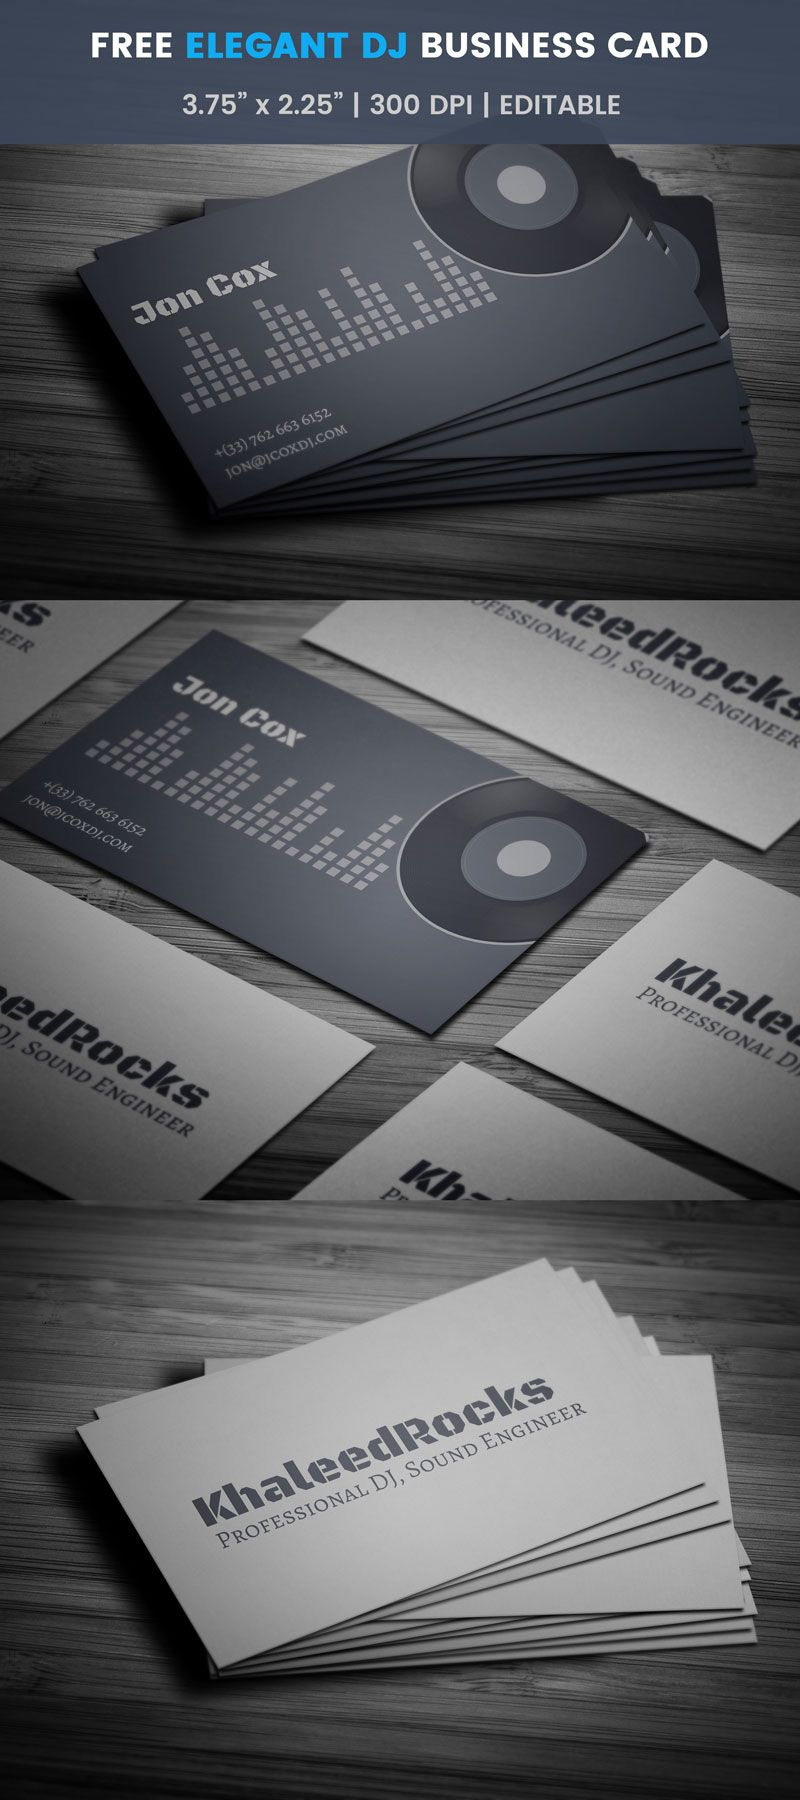 Free party dj business card pinterest business cards card edit this elegant dj card template online with your branding images and reheart Choice Image